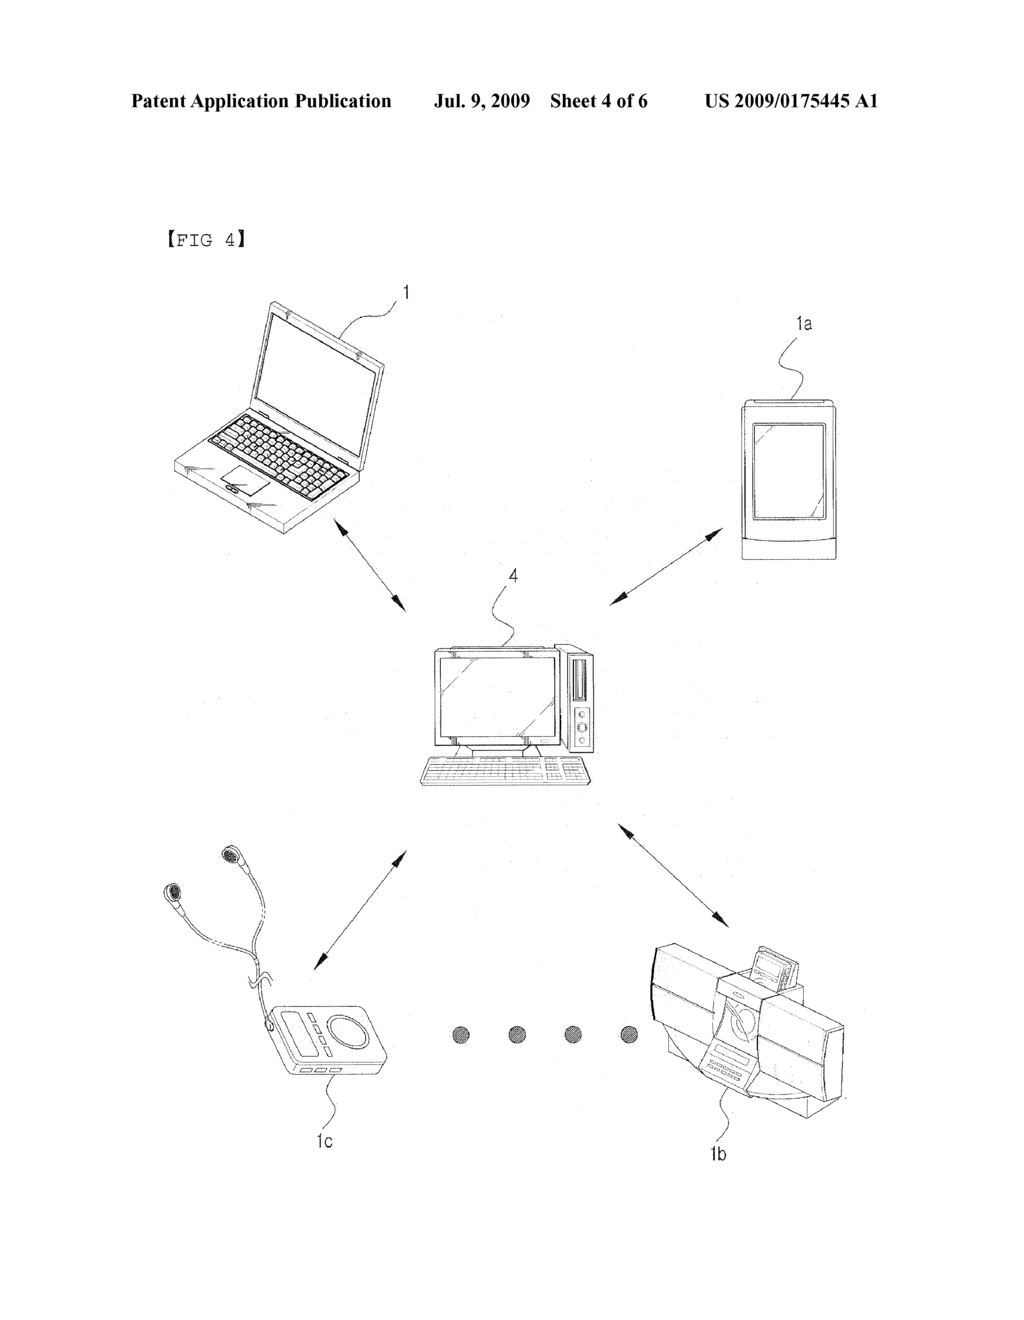 Electronic device home work system and method for protecting